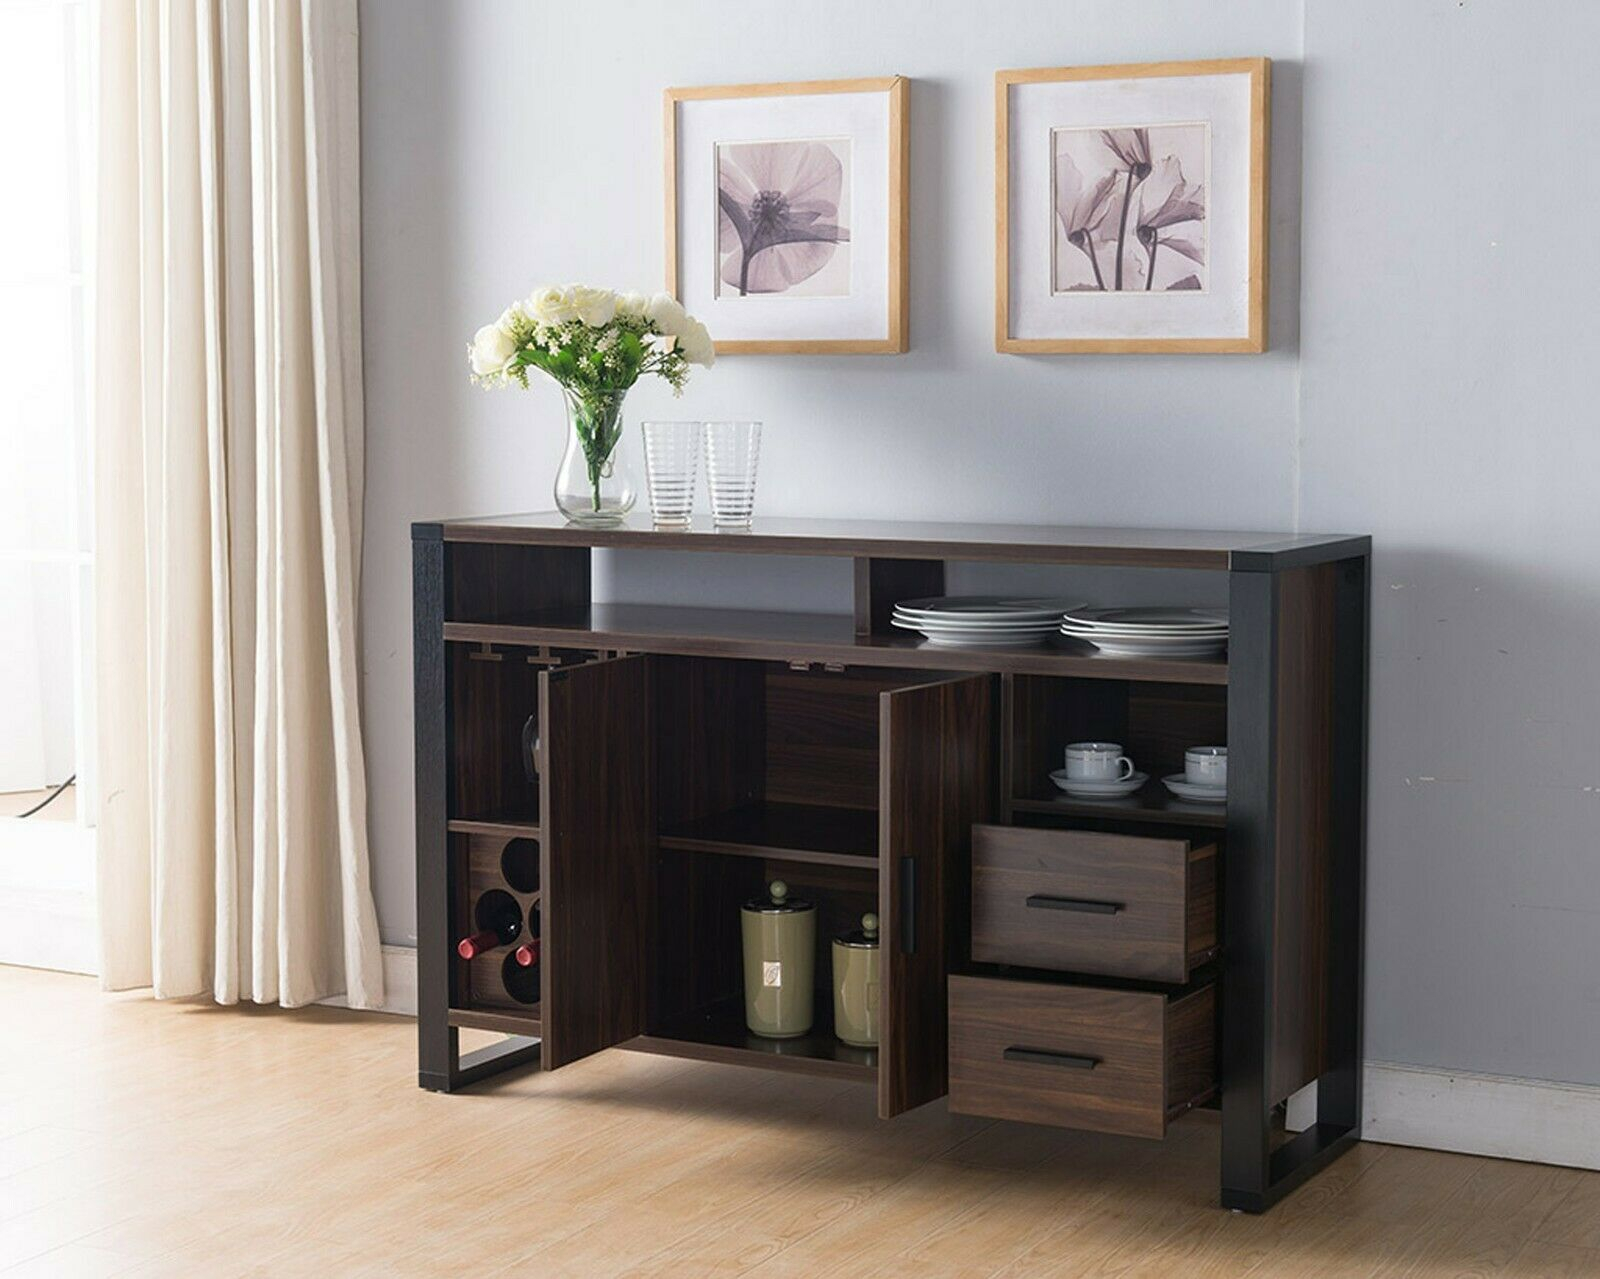 161640 Smart Home Dark Walnut & Black Wine Bar Sideboard Buffet Table with regard to Sideboards by Wildon Home (Image 1 of 30)